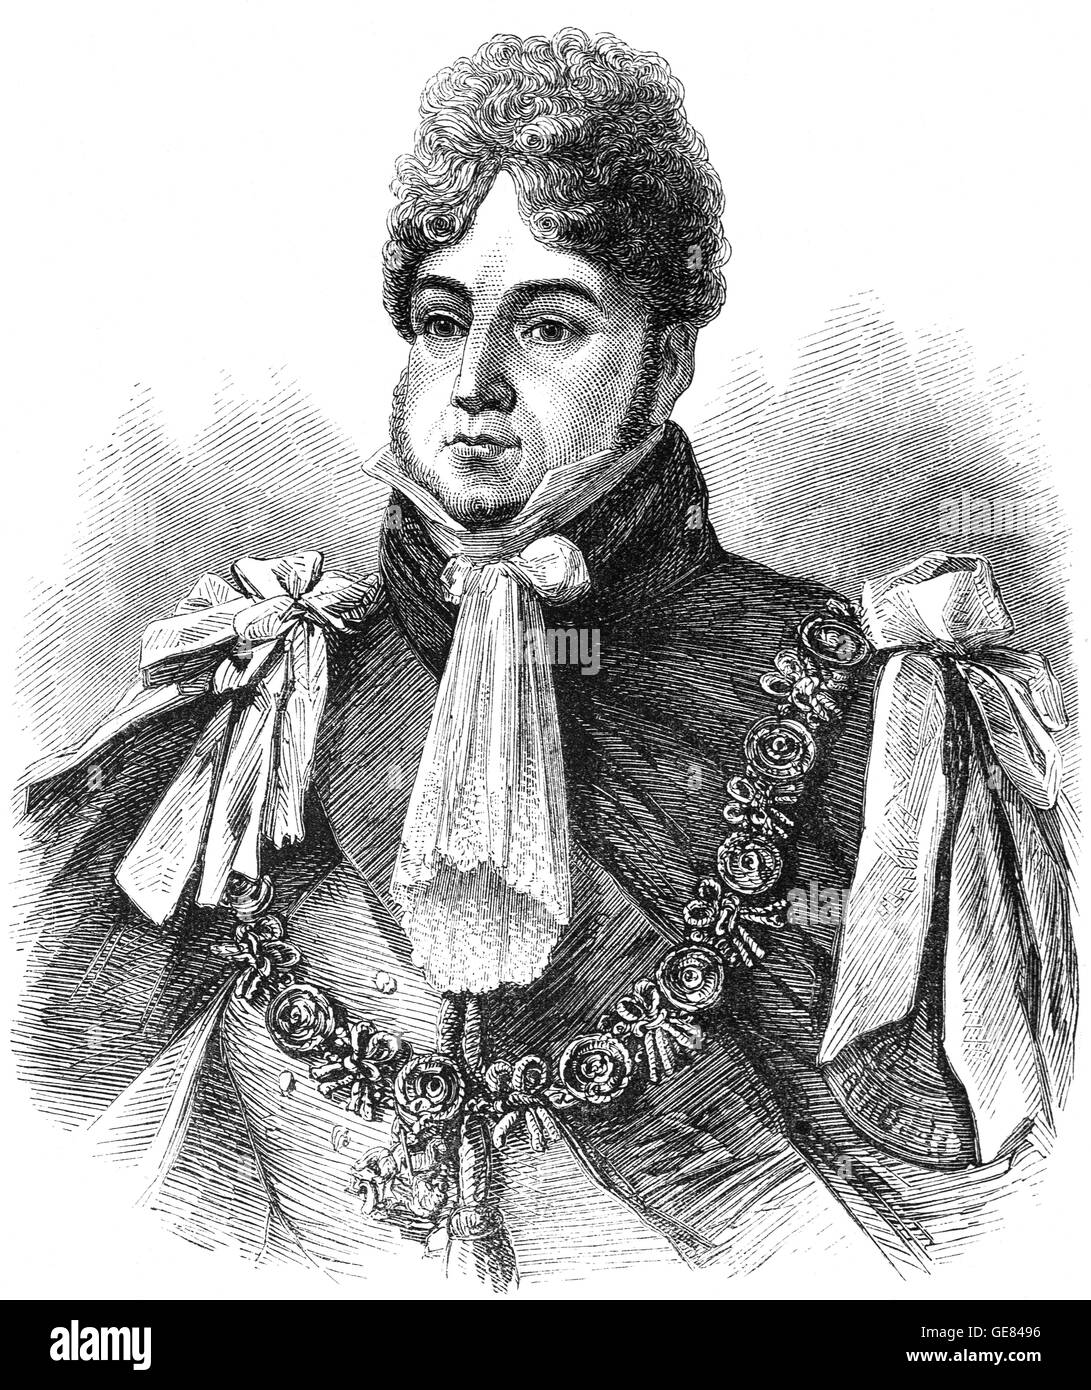 George Frederick, served as Prince Regent during his father's final mental illness. Following the death of his - Stock Image